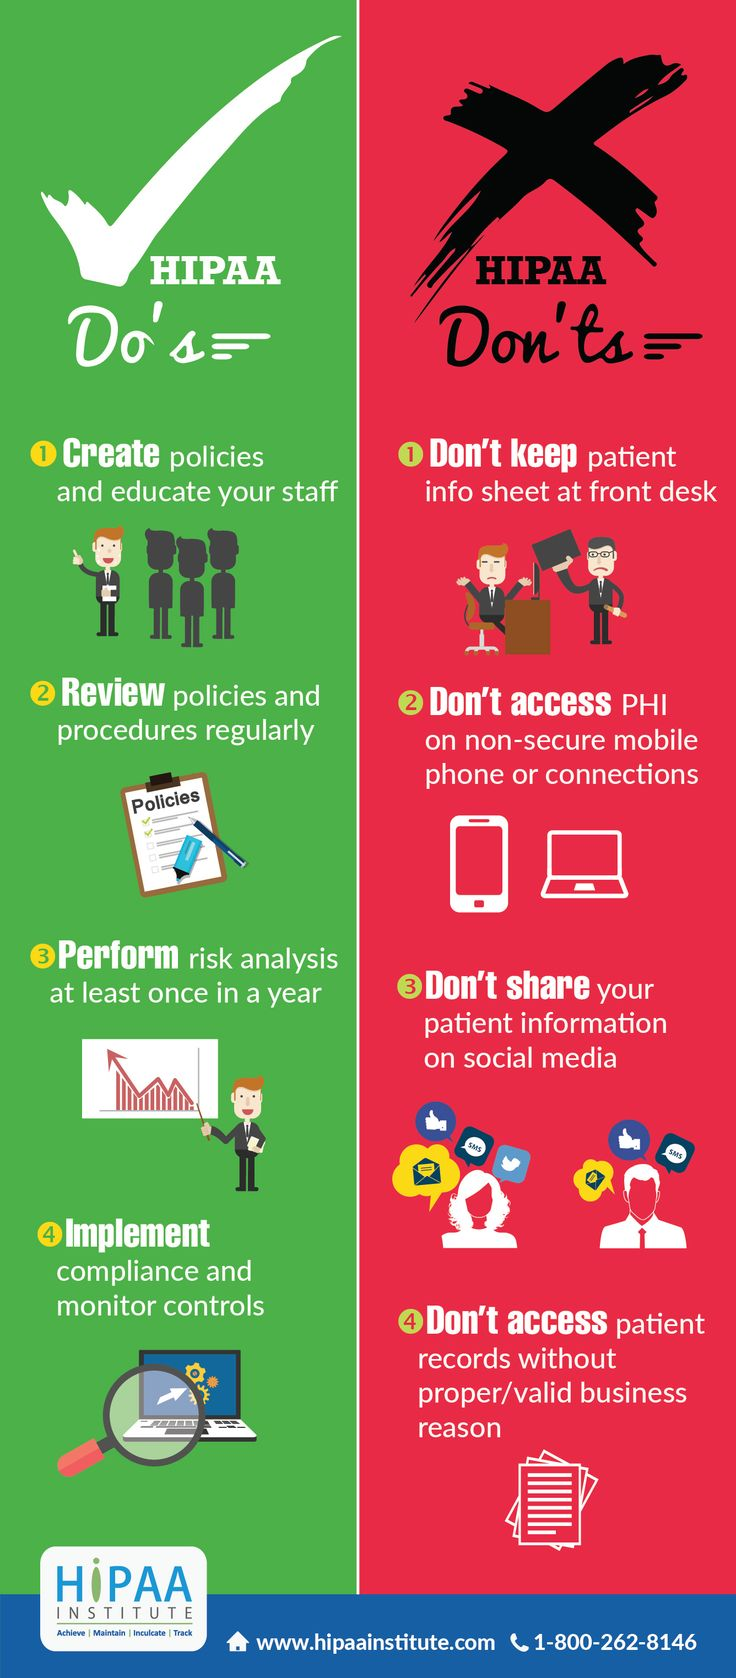 10 common HIPAA violations and preventative measures to keep your practice in compliance